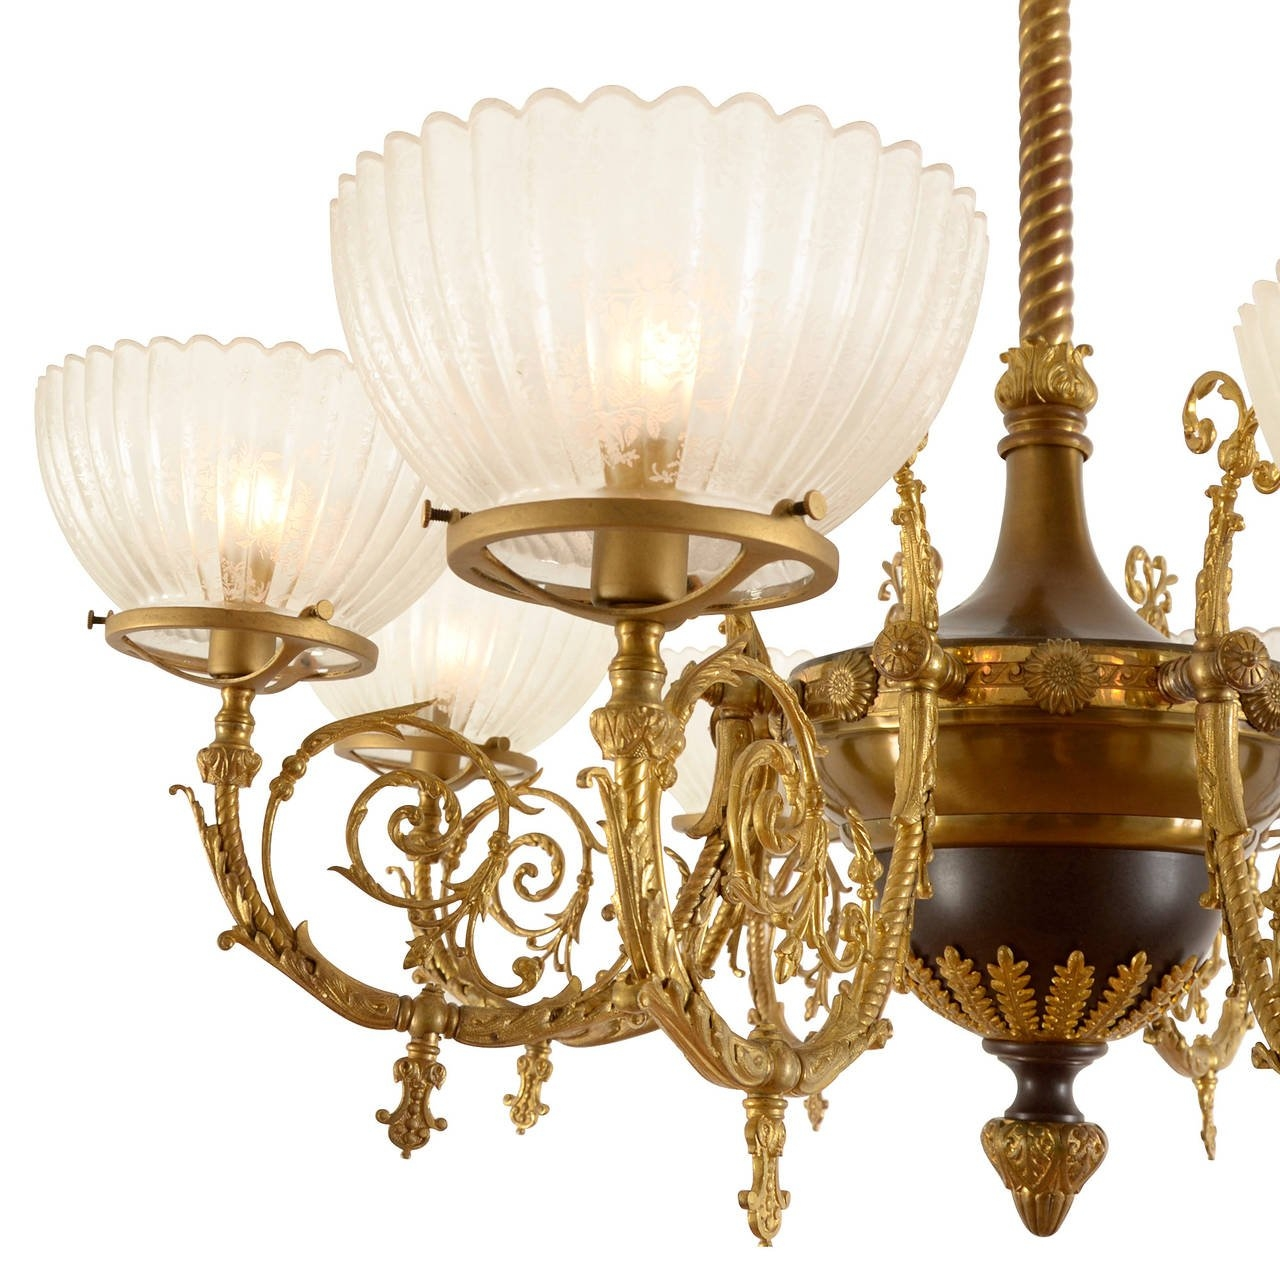 Eight Light Beaux Arts Chandelier With Ornate Ormolu Circa 1895 Intended For Ornate Chandeliers (Image 8 of 15)